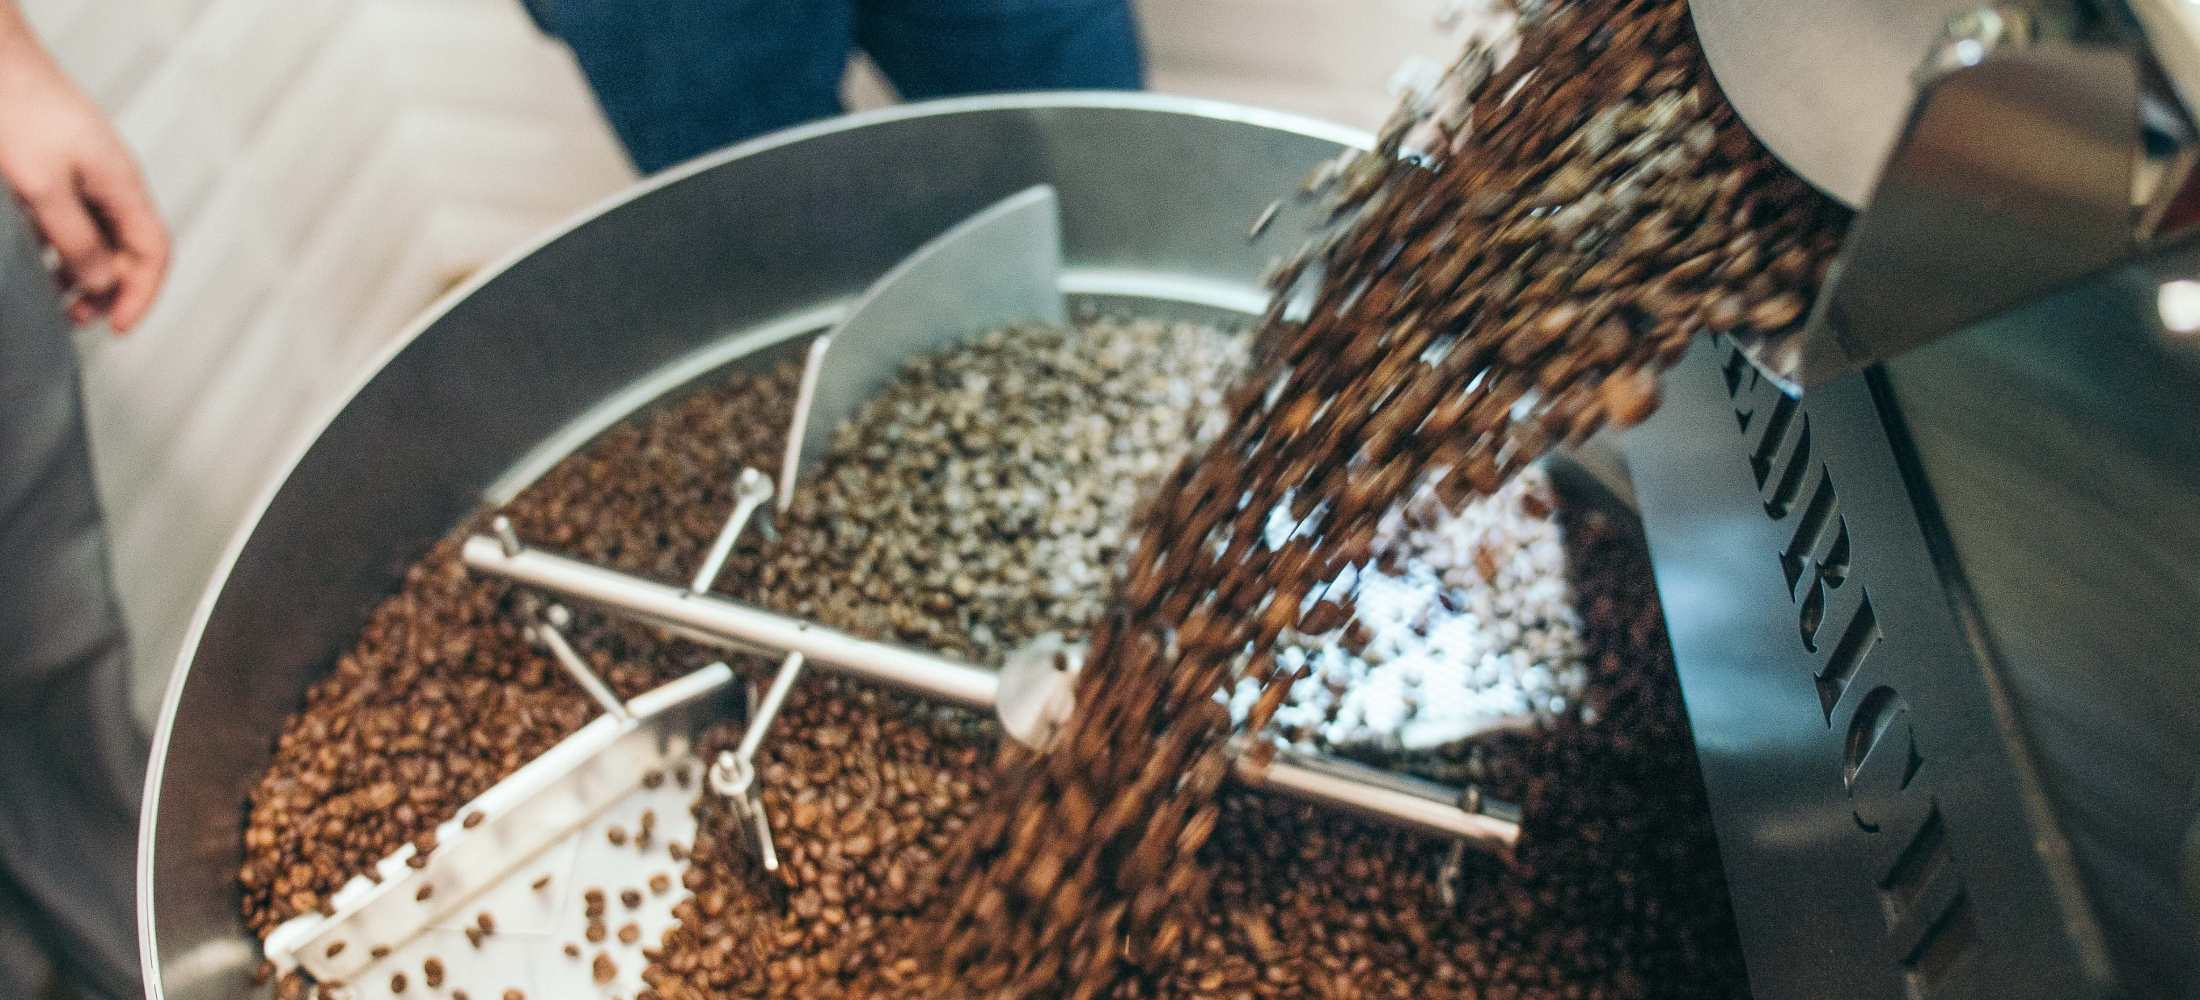 Does A Dark Roast Contain More Caffeine? Understanding Coffee Roasts